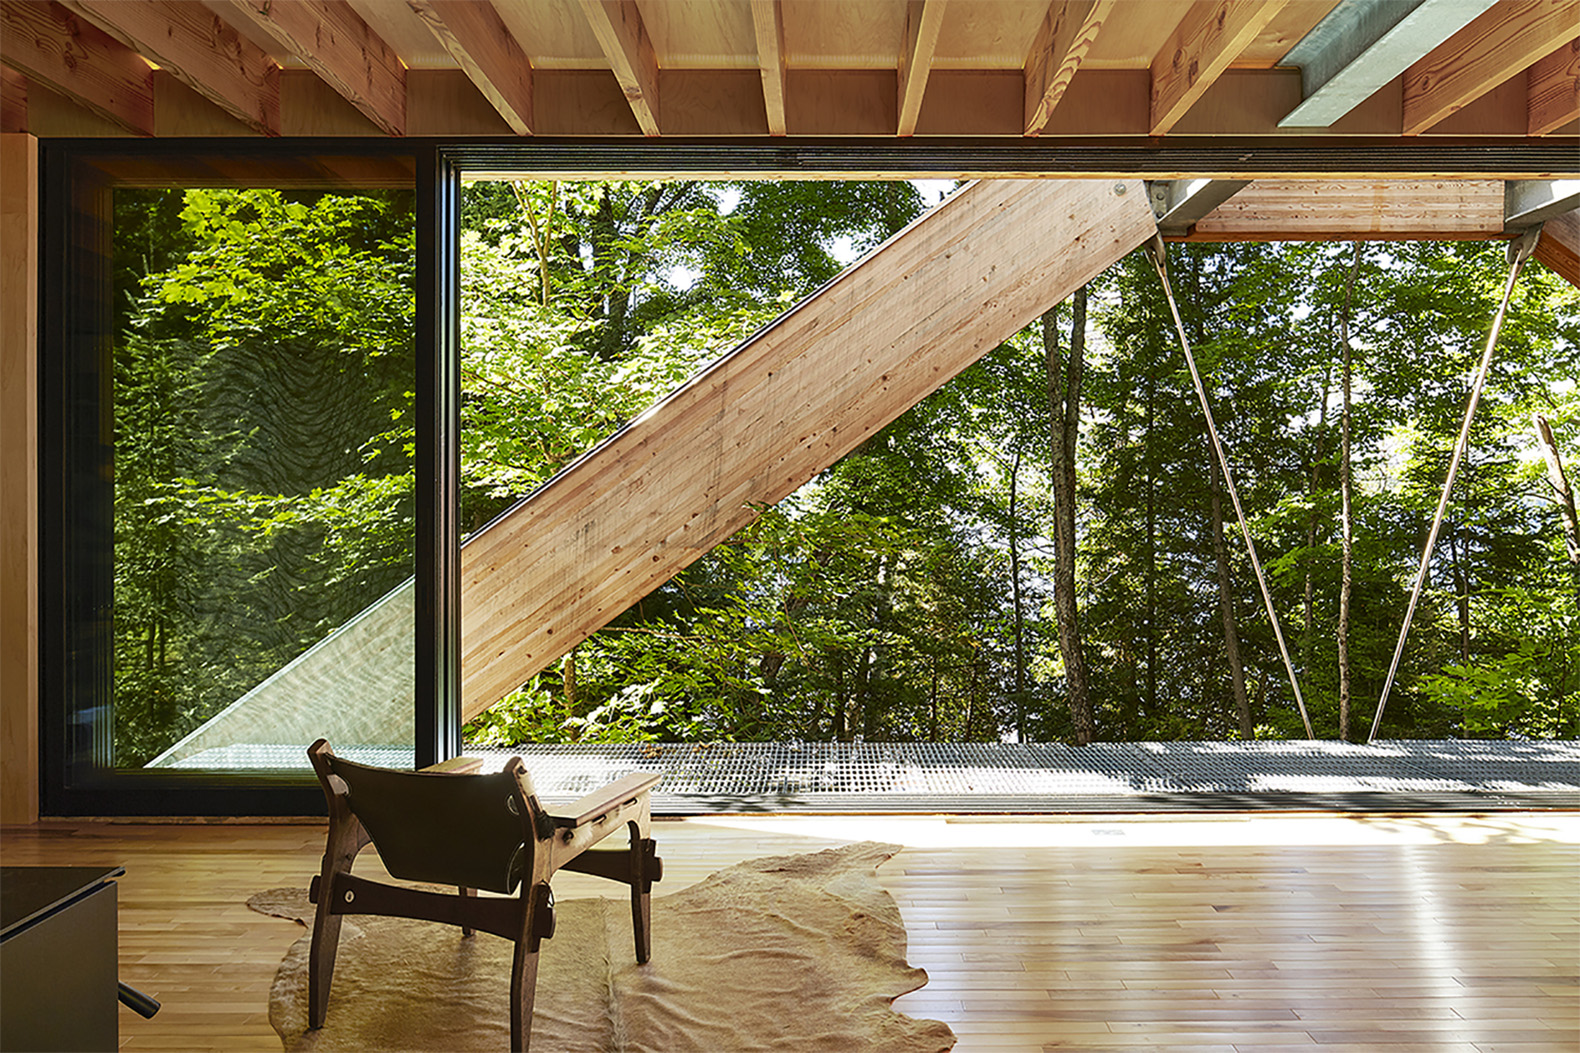 Nevada City Covered Bridge House - Commentaires …